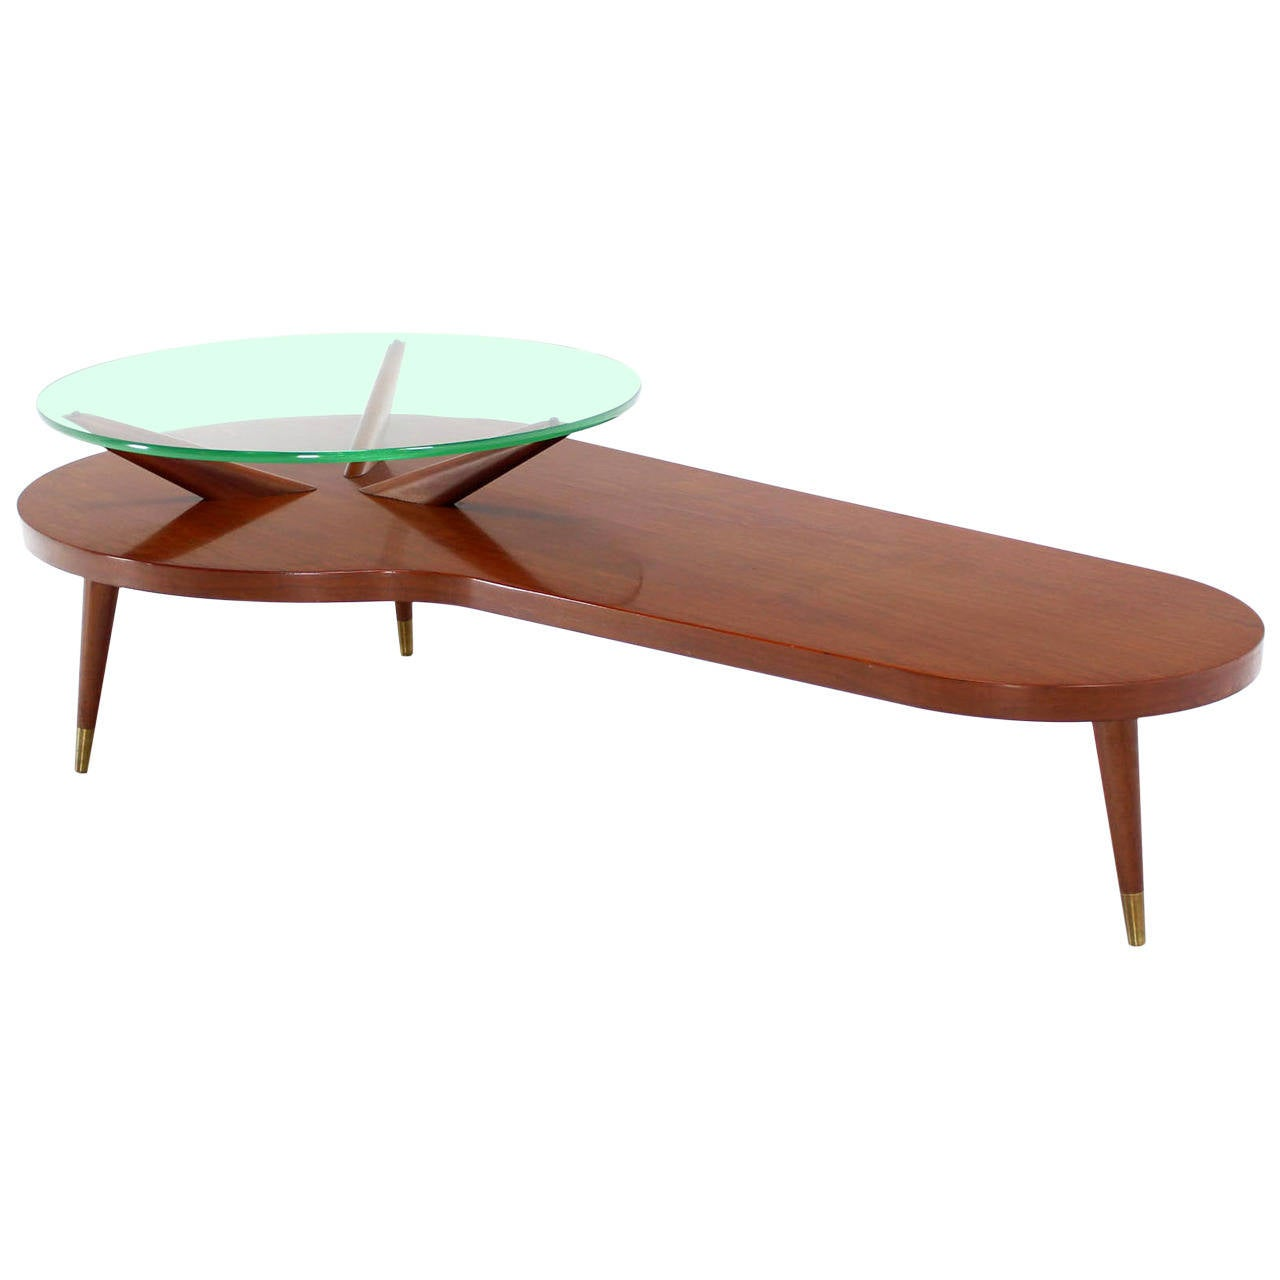 Mid century modern walnut organic kidney shape coffee table round glass top for sale at 1stdibs Mid century coffee tables